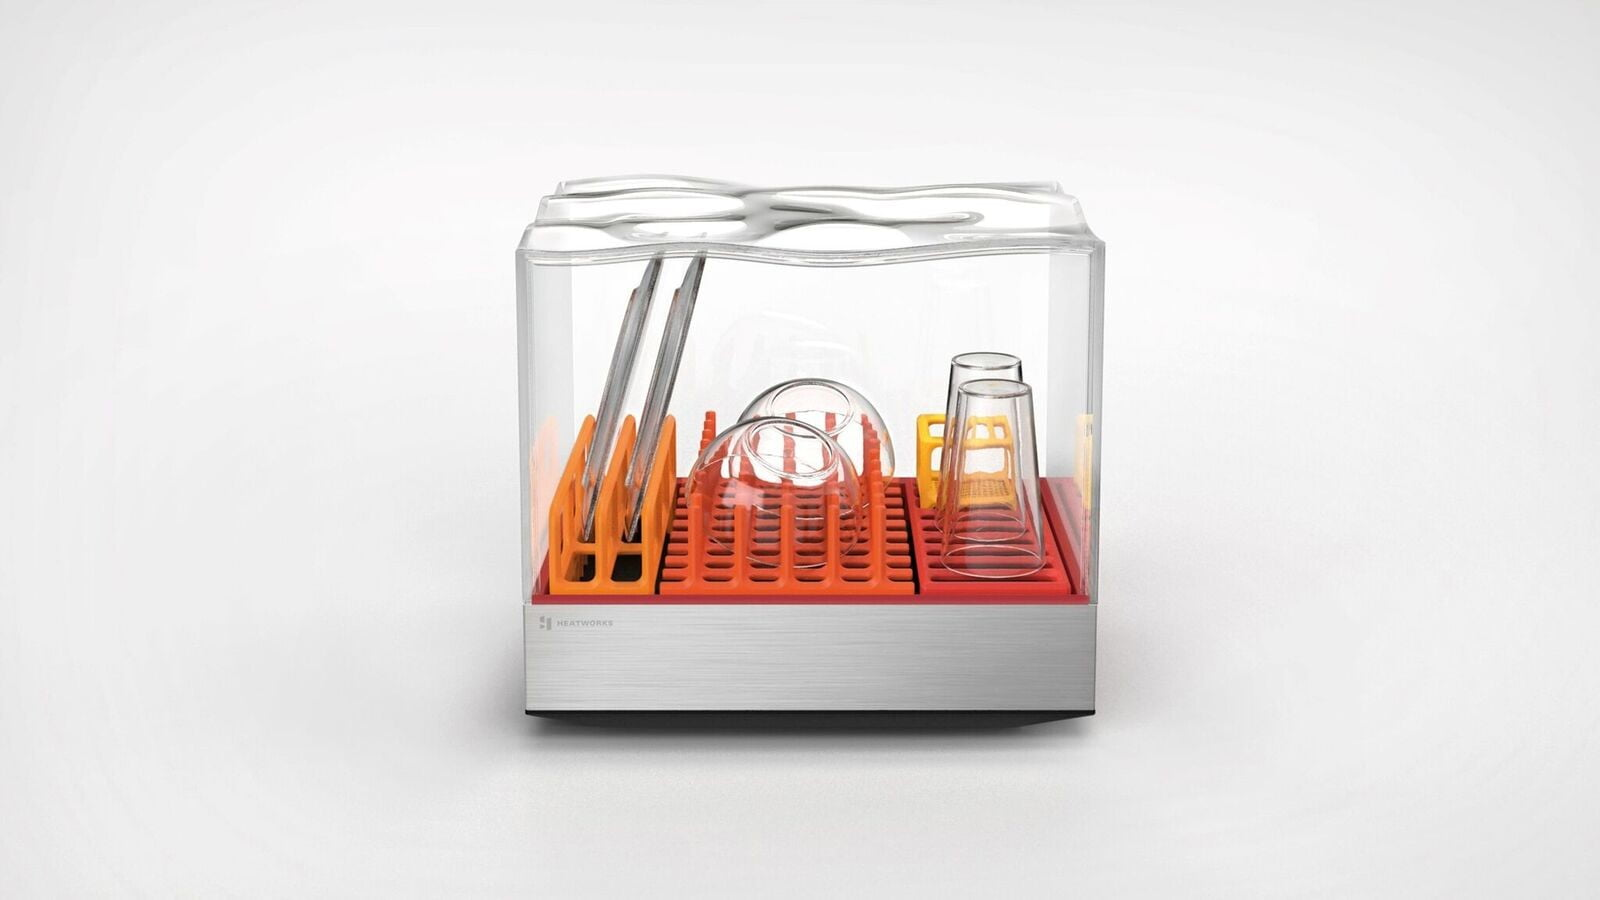 Heatworks' Tetra countertop dishwasher is now available for pre-order